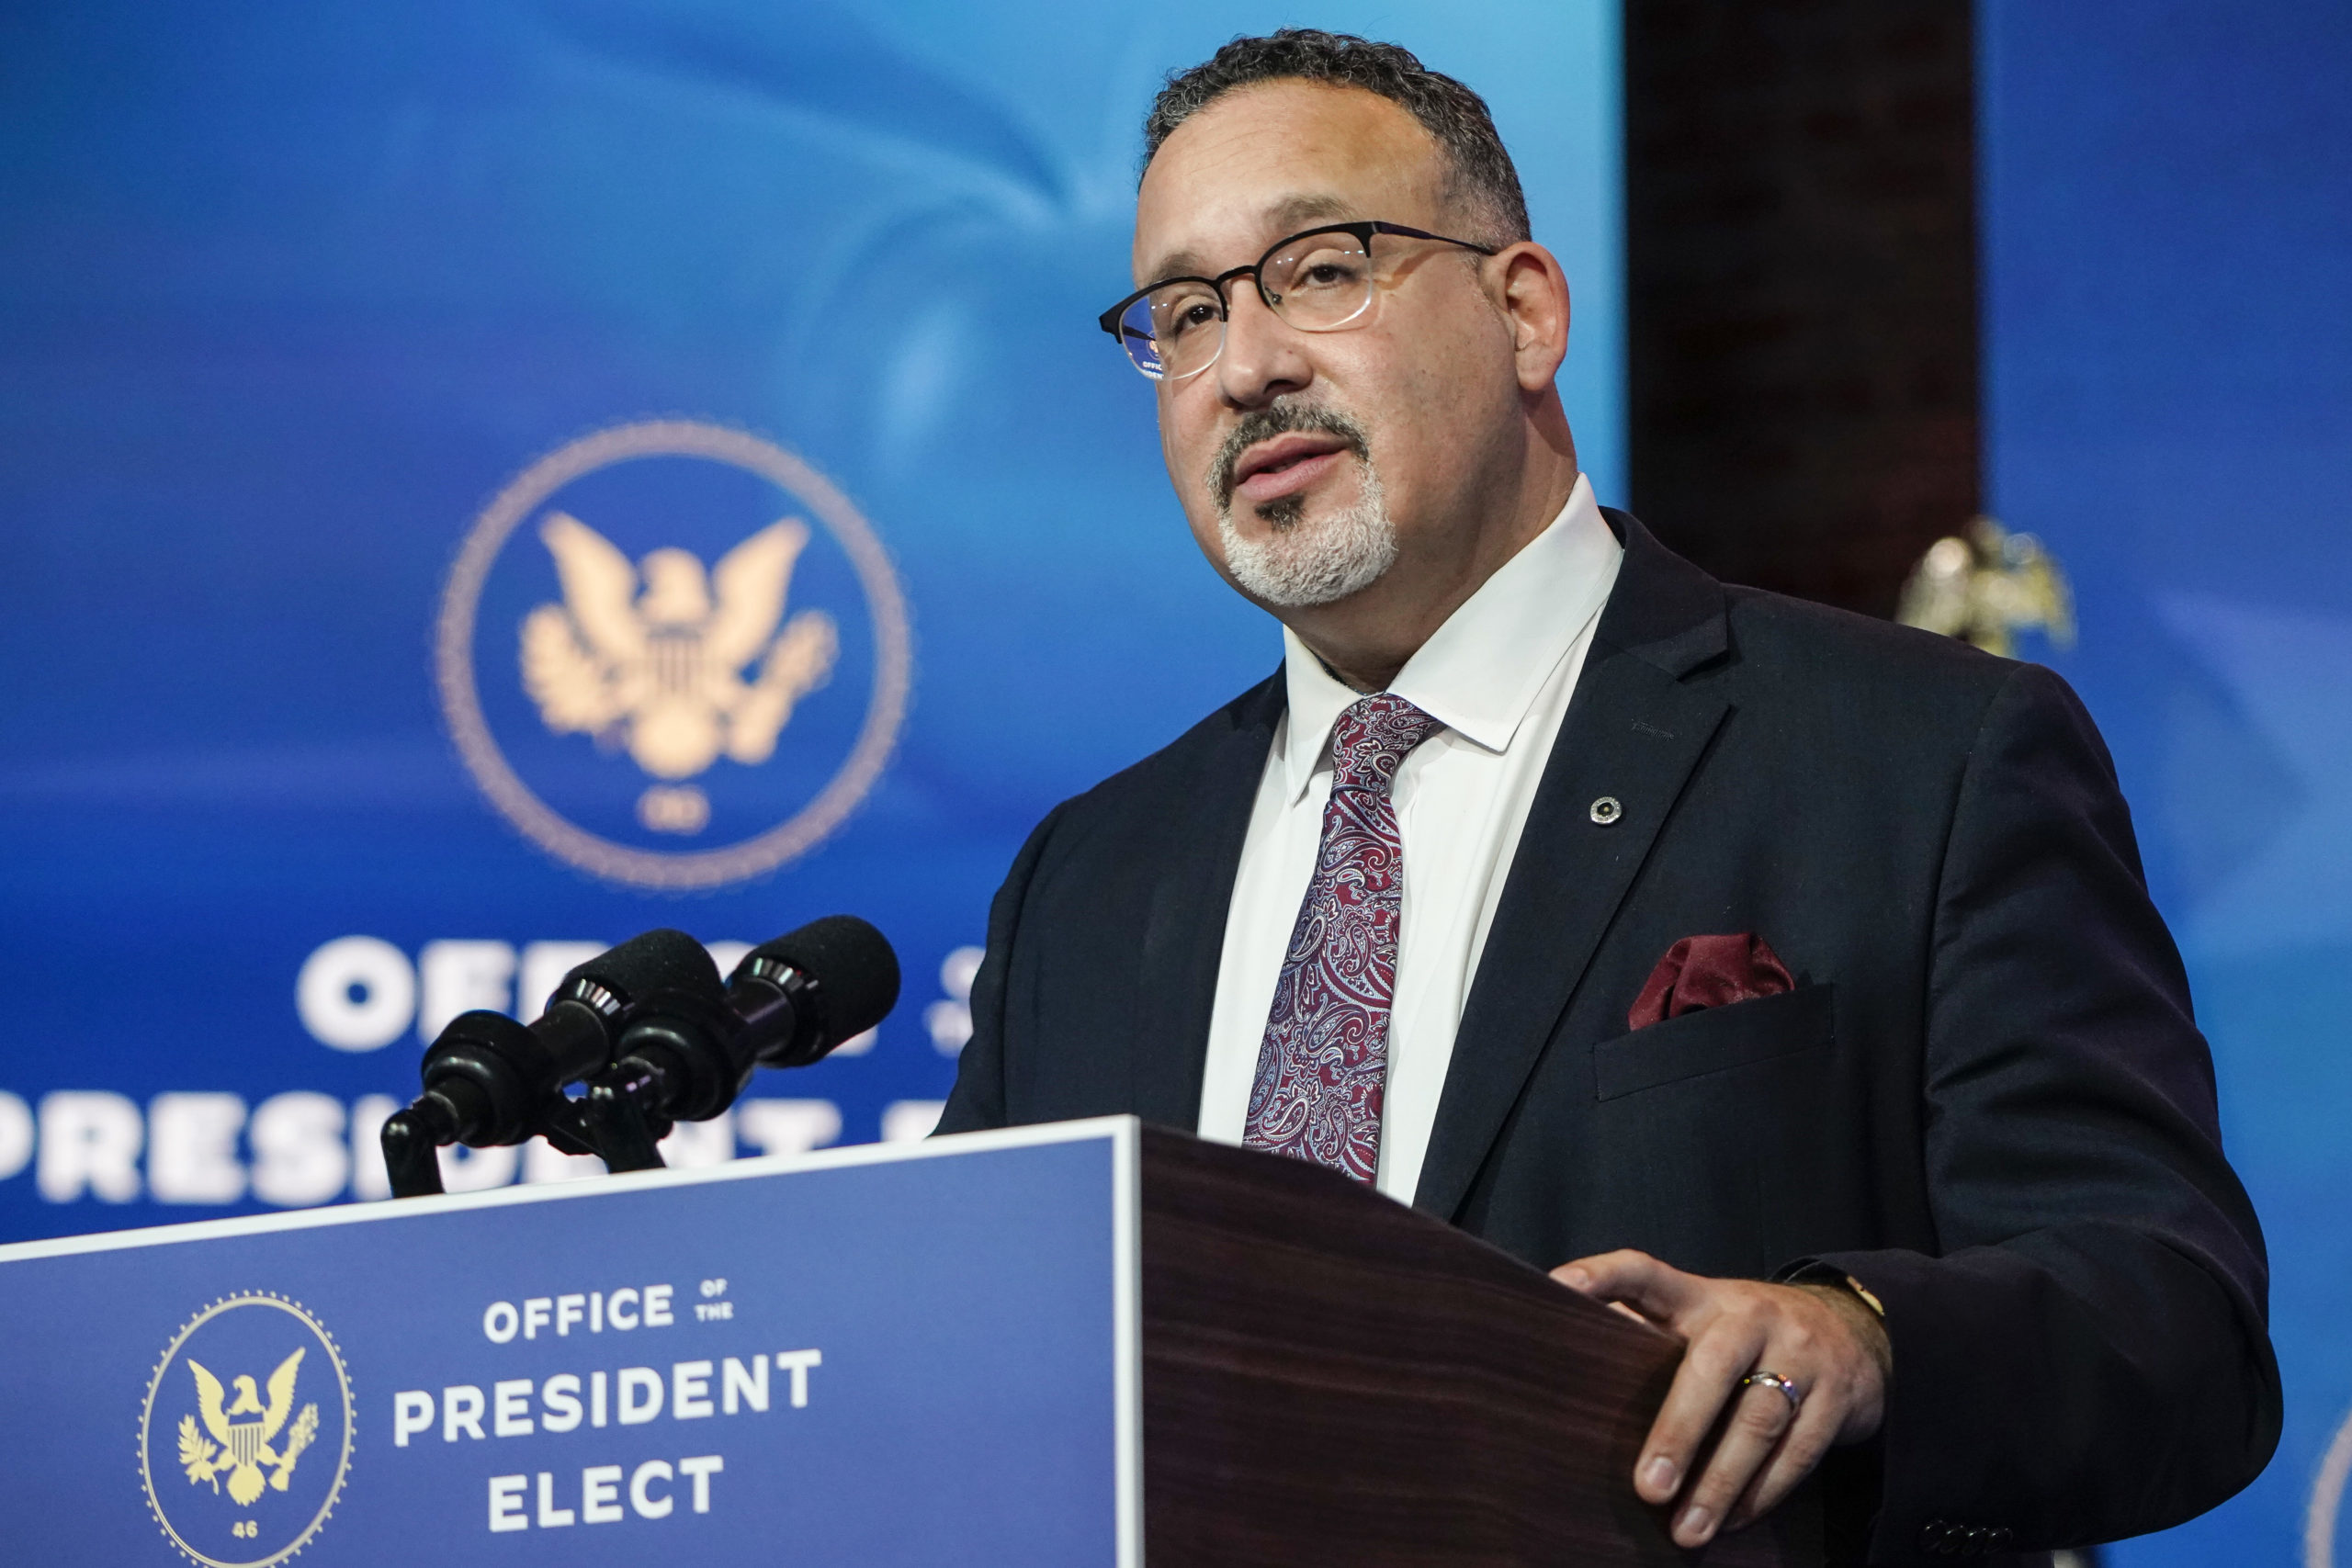 Miguel Cardona speaks after President-Elect Joe Biden announced his nomination for Education Secretary at the Queen theatre on December 23, 2020 in Wilmington, Delaware. (Joshua Roberts/Getty Images)